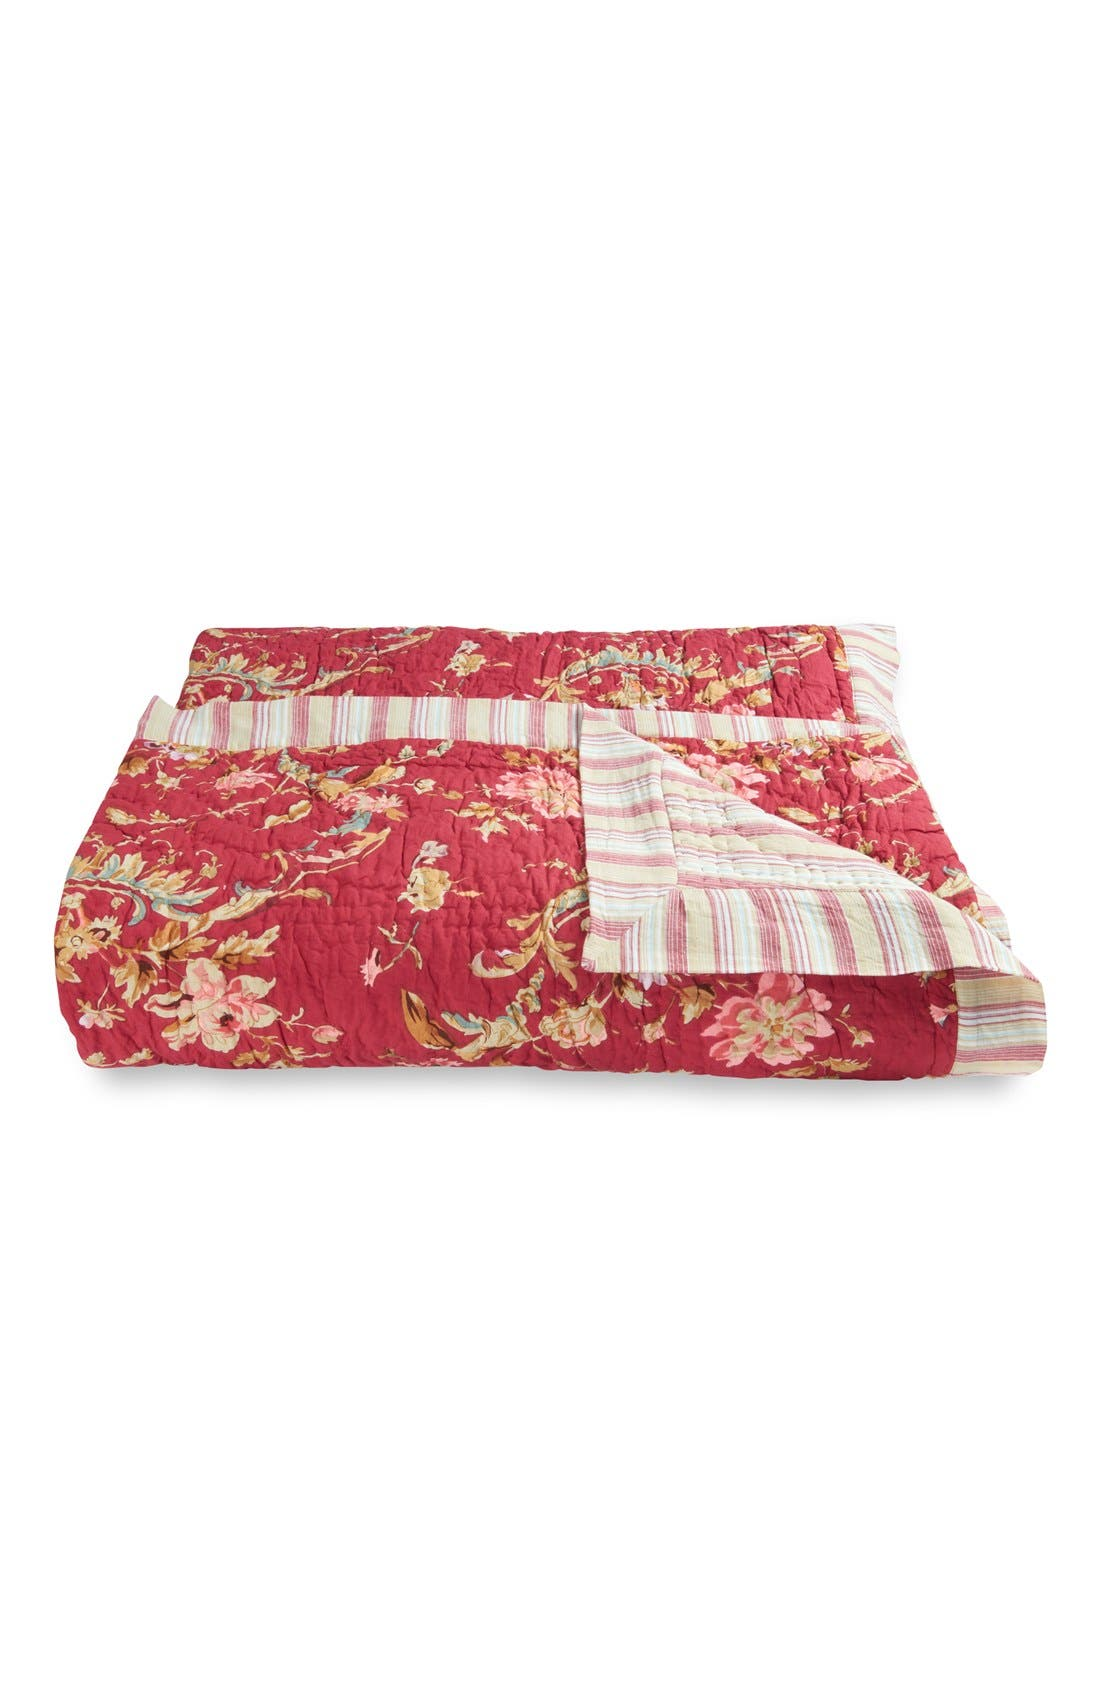 Alternate Image 1 Selected - Amity Home 'Regina' Quilt